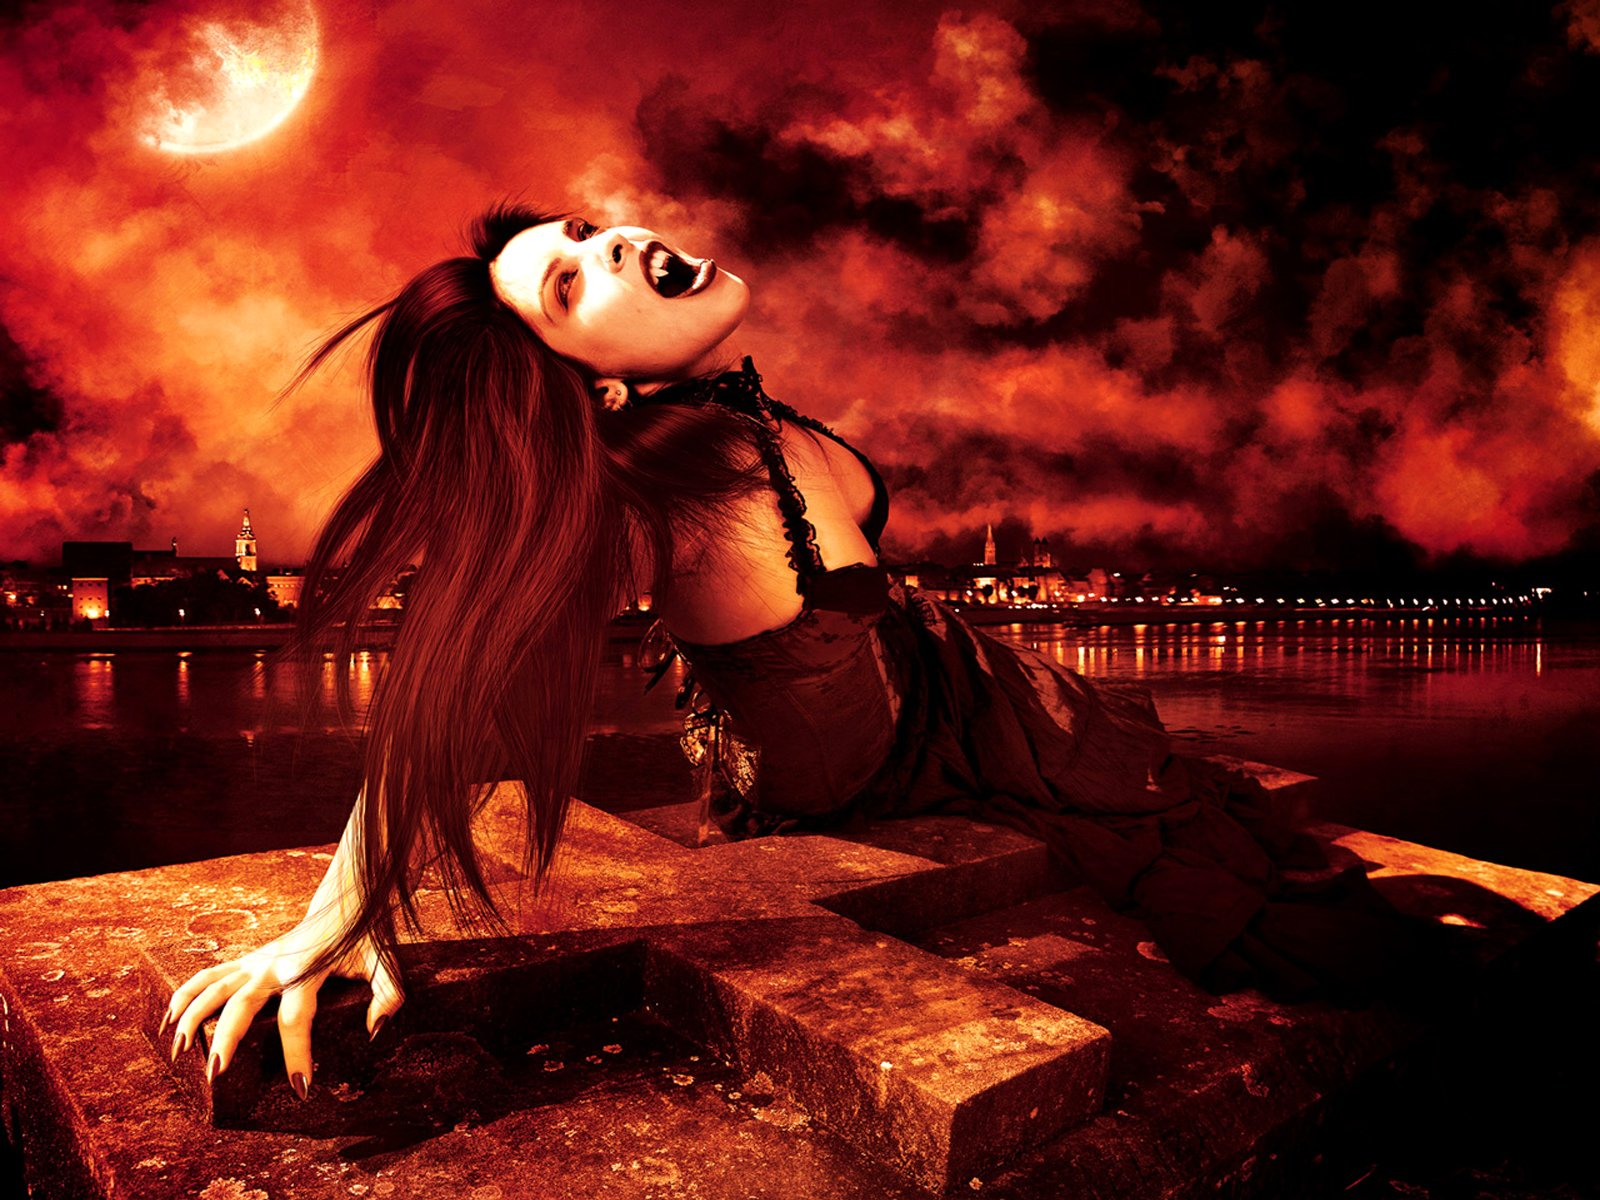 210 Vampire HD Wallpapers | Backgrounds - Wallpaper Abyss